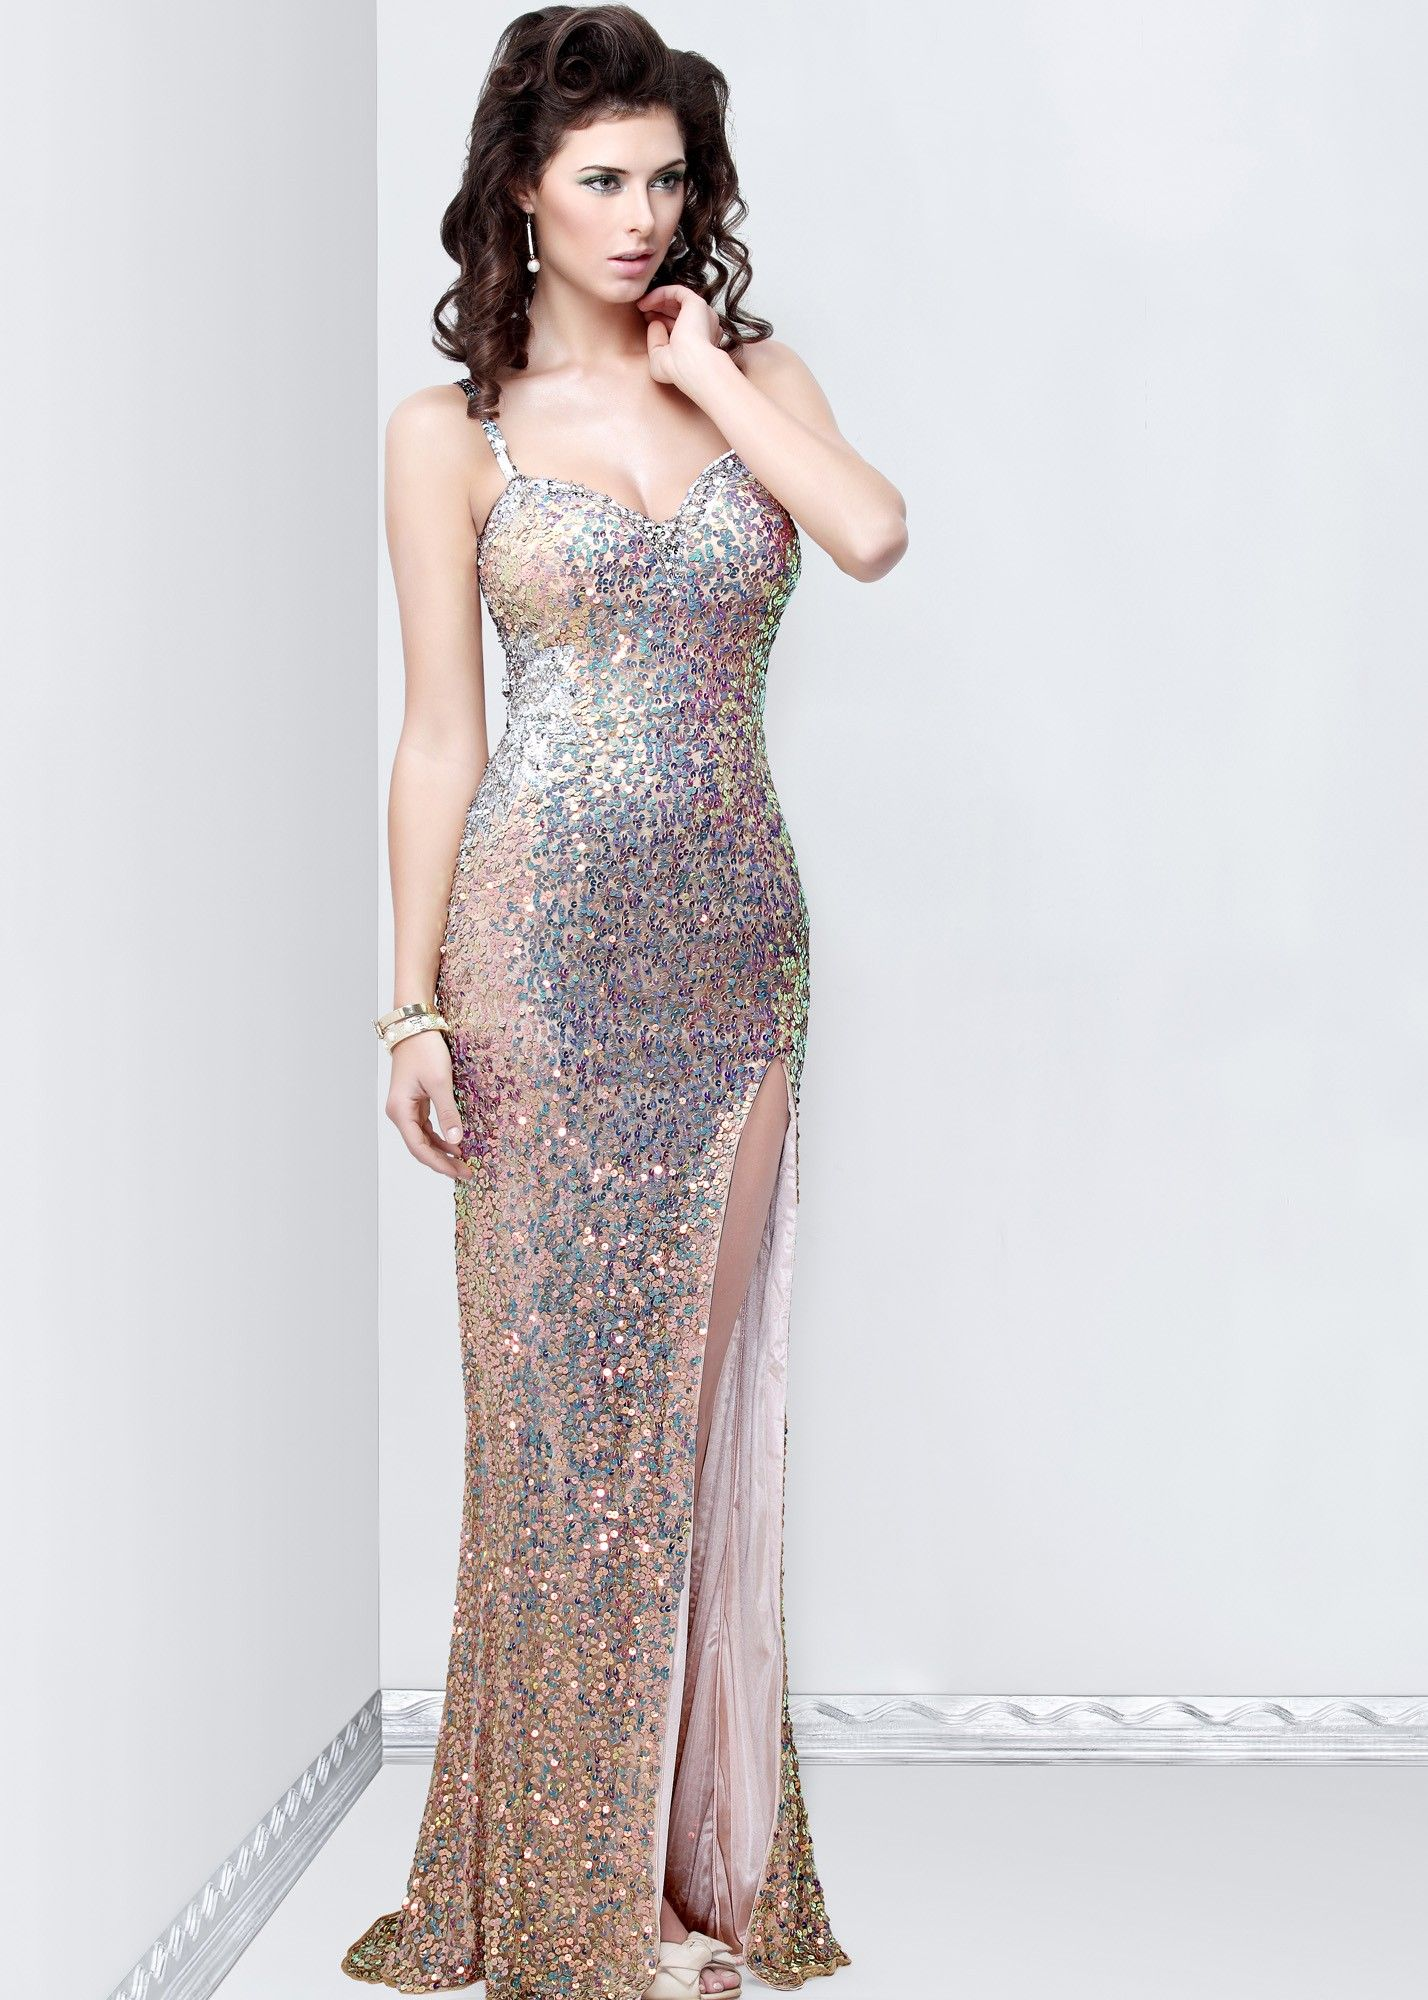 Primavera sweetheart sequin gown dresses pinterest